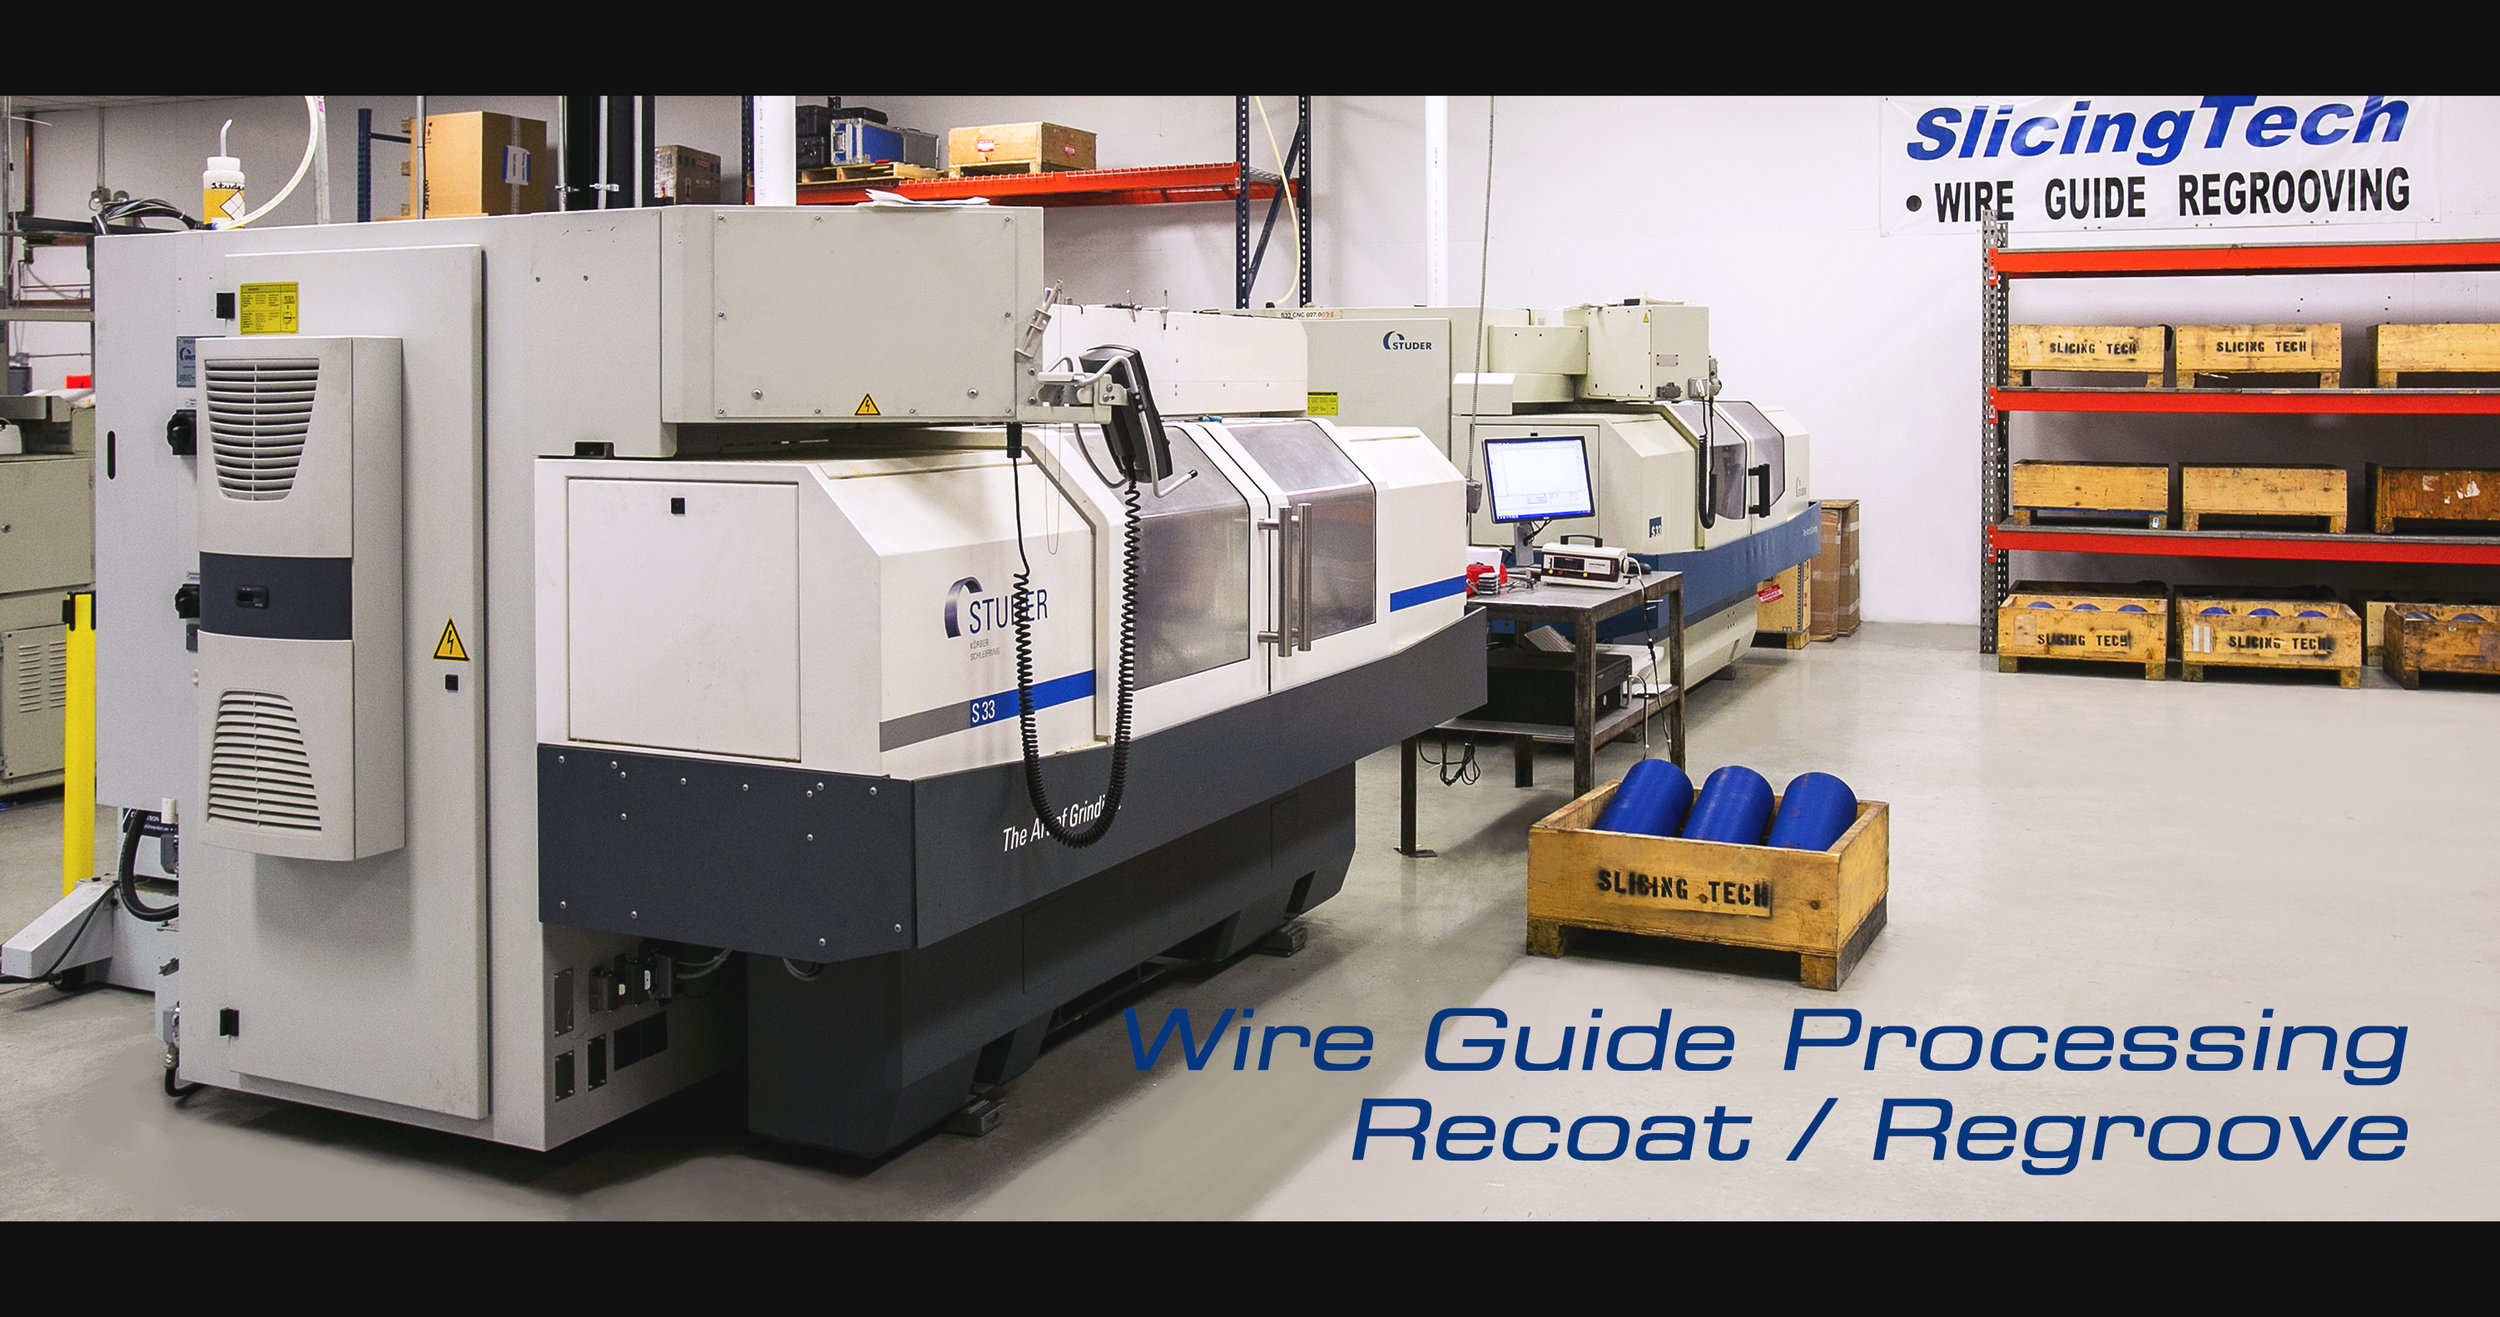 SlicingTech - Contract Wire Saw Wafer Slicing - Diamond Wire